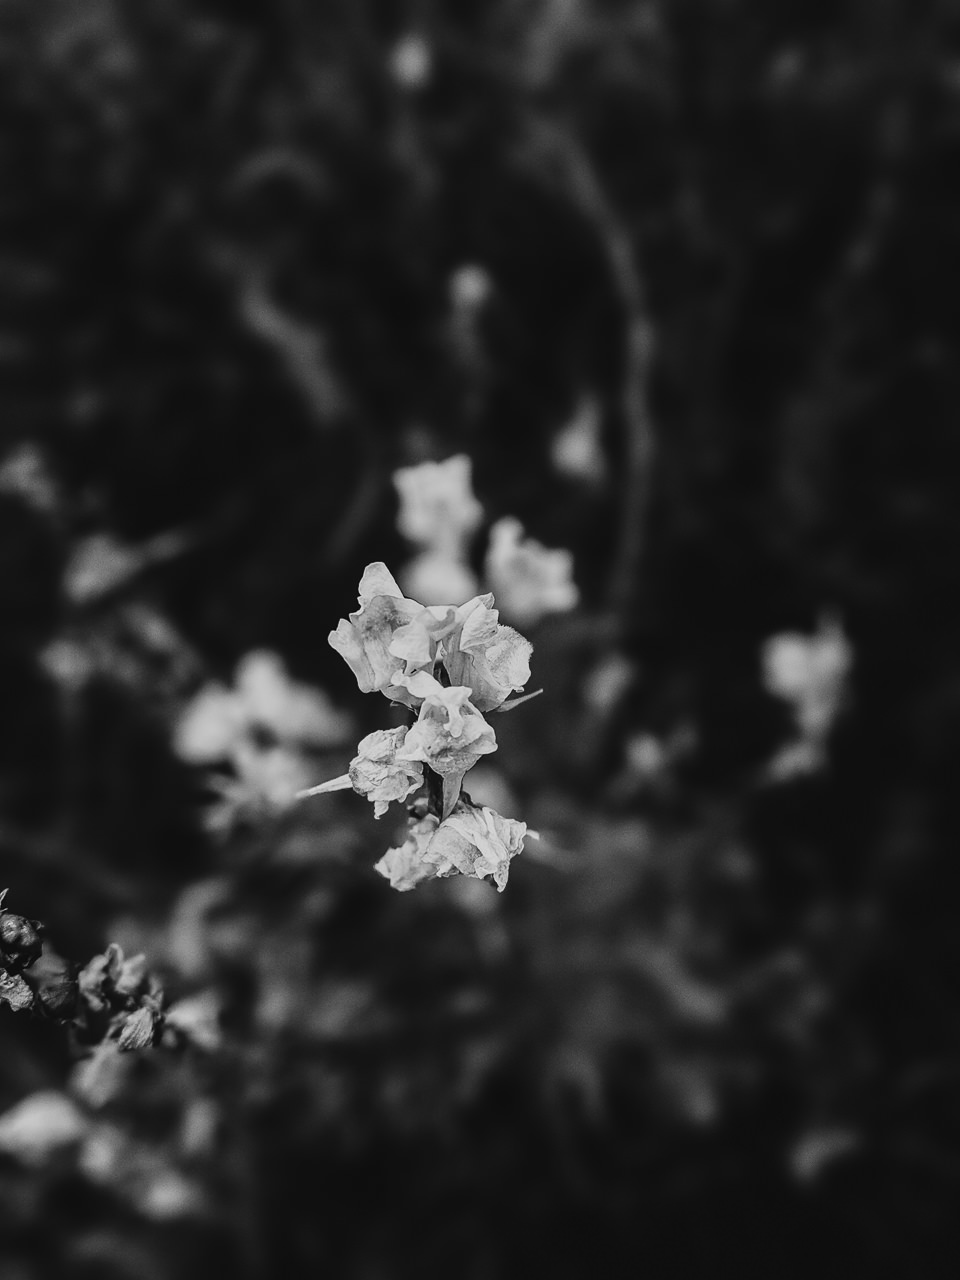 Day 239 - 365 Day B&W Photo Challenge - Summer flowers in bloom - Google Pixel 3 , Prbocessed with VSCO with b6 preset.